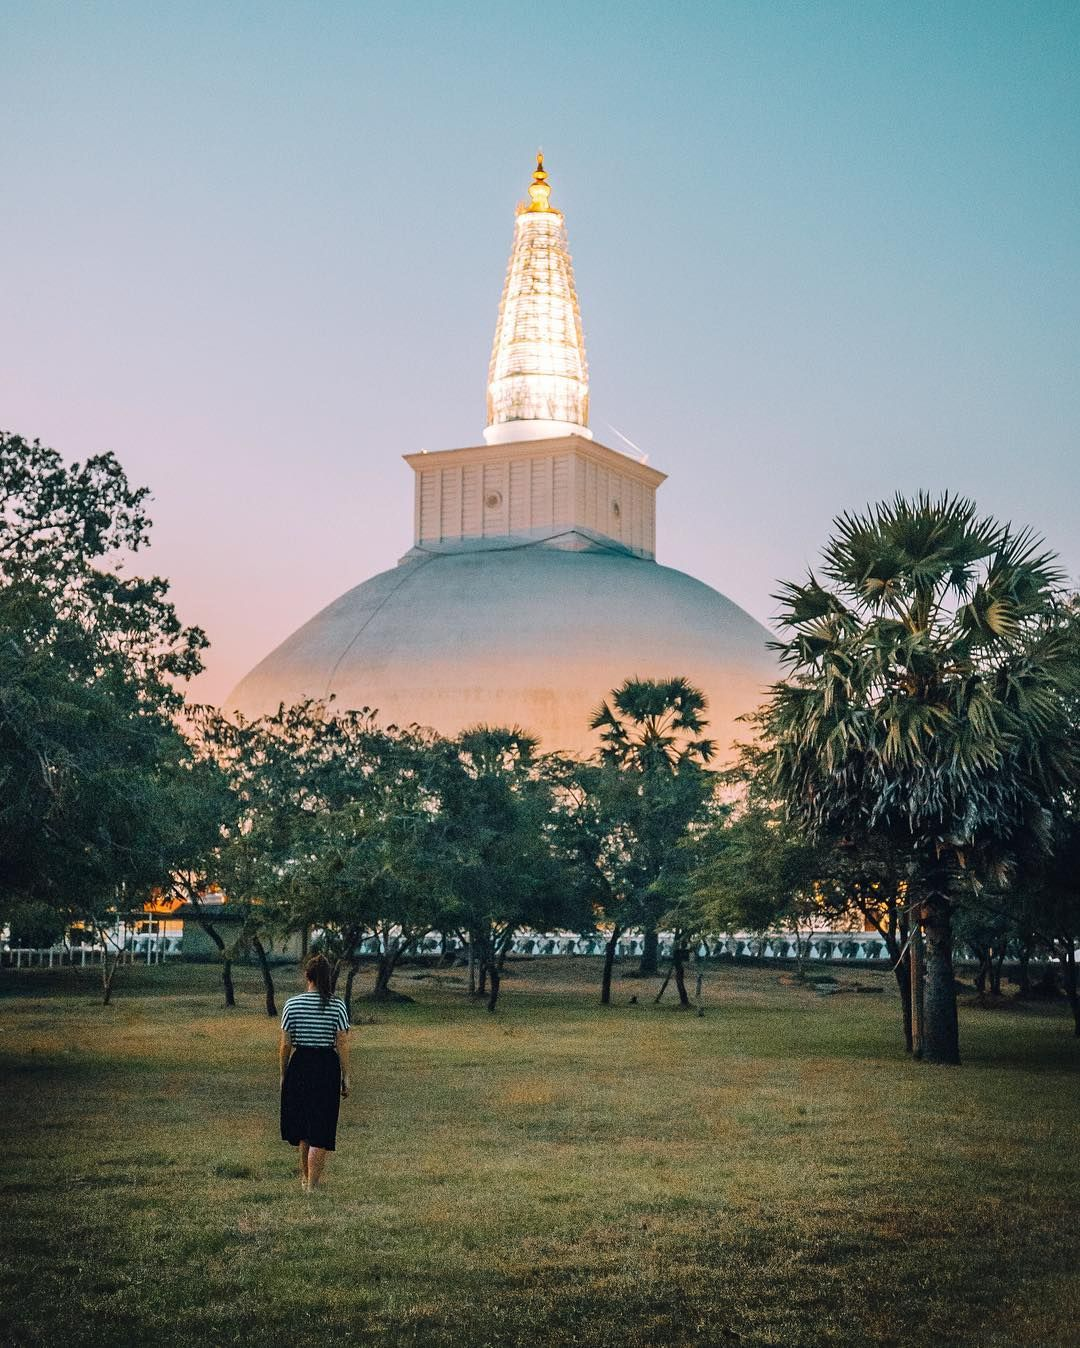 Anuradhapura, Sri Lanka  #srilanka #visitsrilanka #anuradhapura #createexplore #exploretocreate #lightroom #agameoftones #landscape_captures #artofvisuals #global_hotshotz #wonderlust #awesomeearth #beautifuldestinations #animalphotography #roamtheplanet  📸 mx.jack